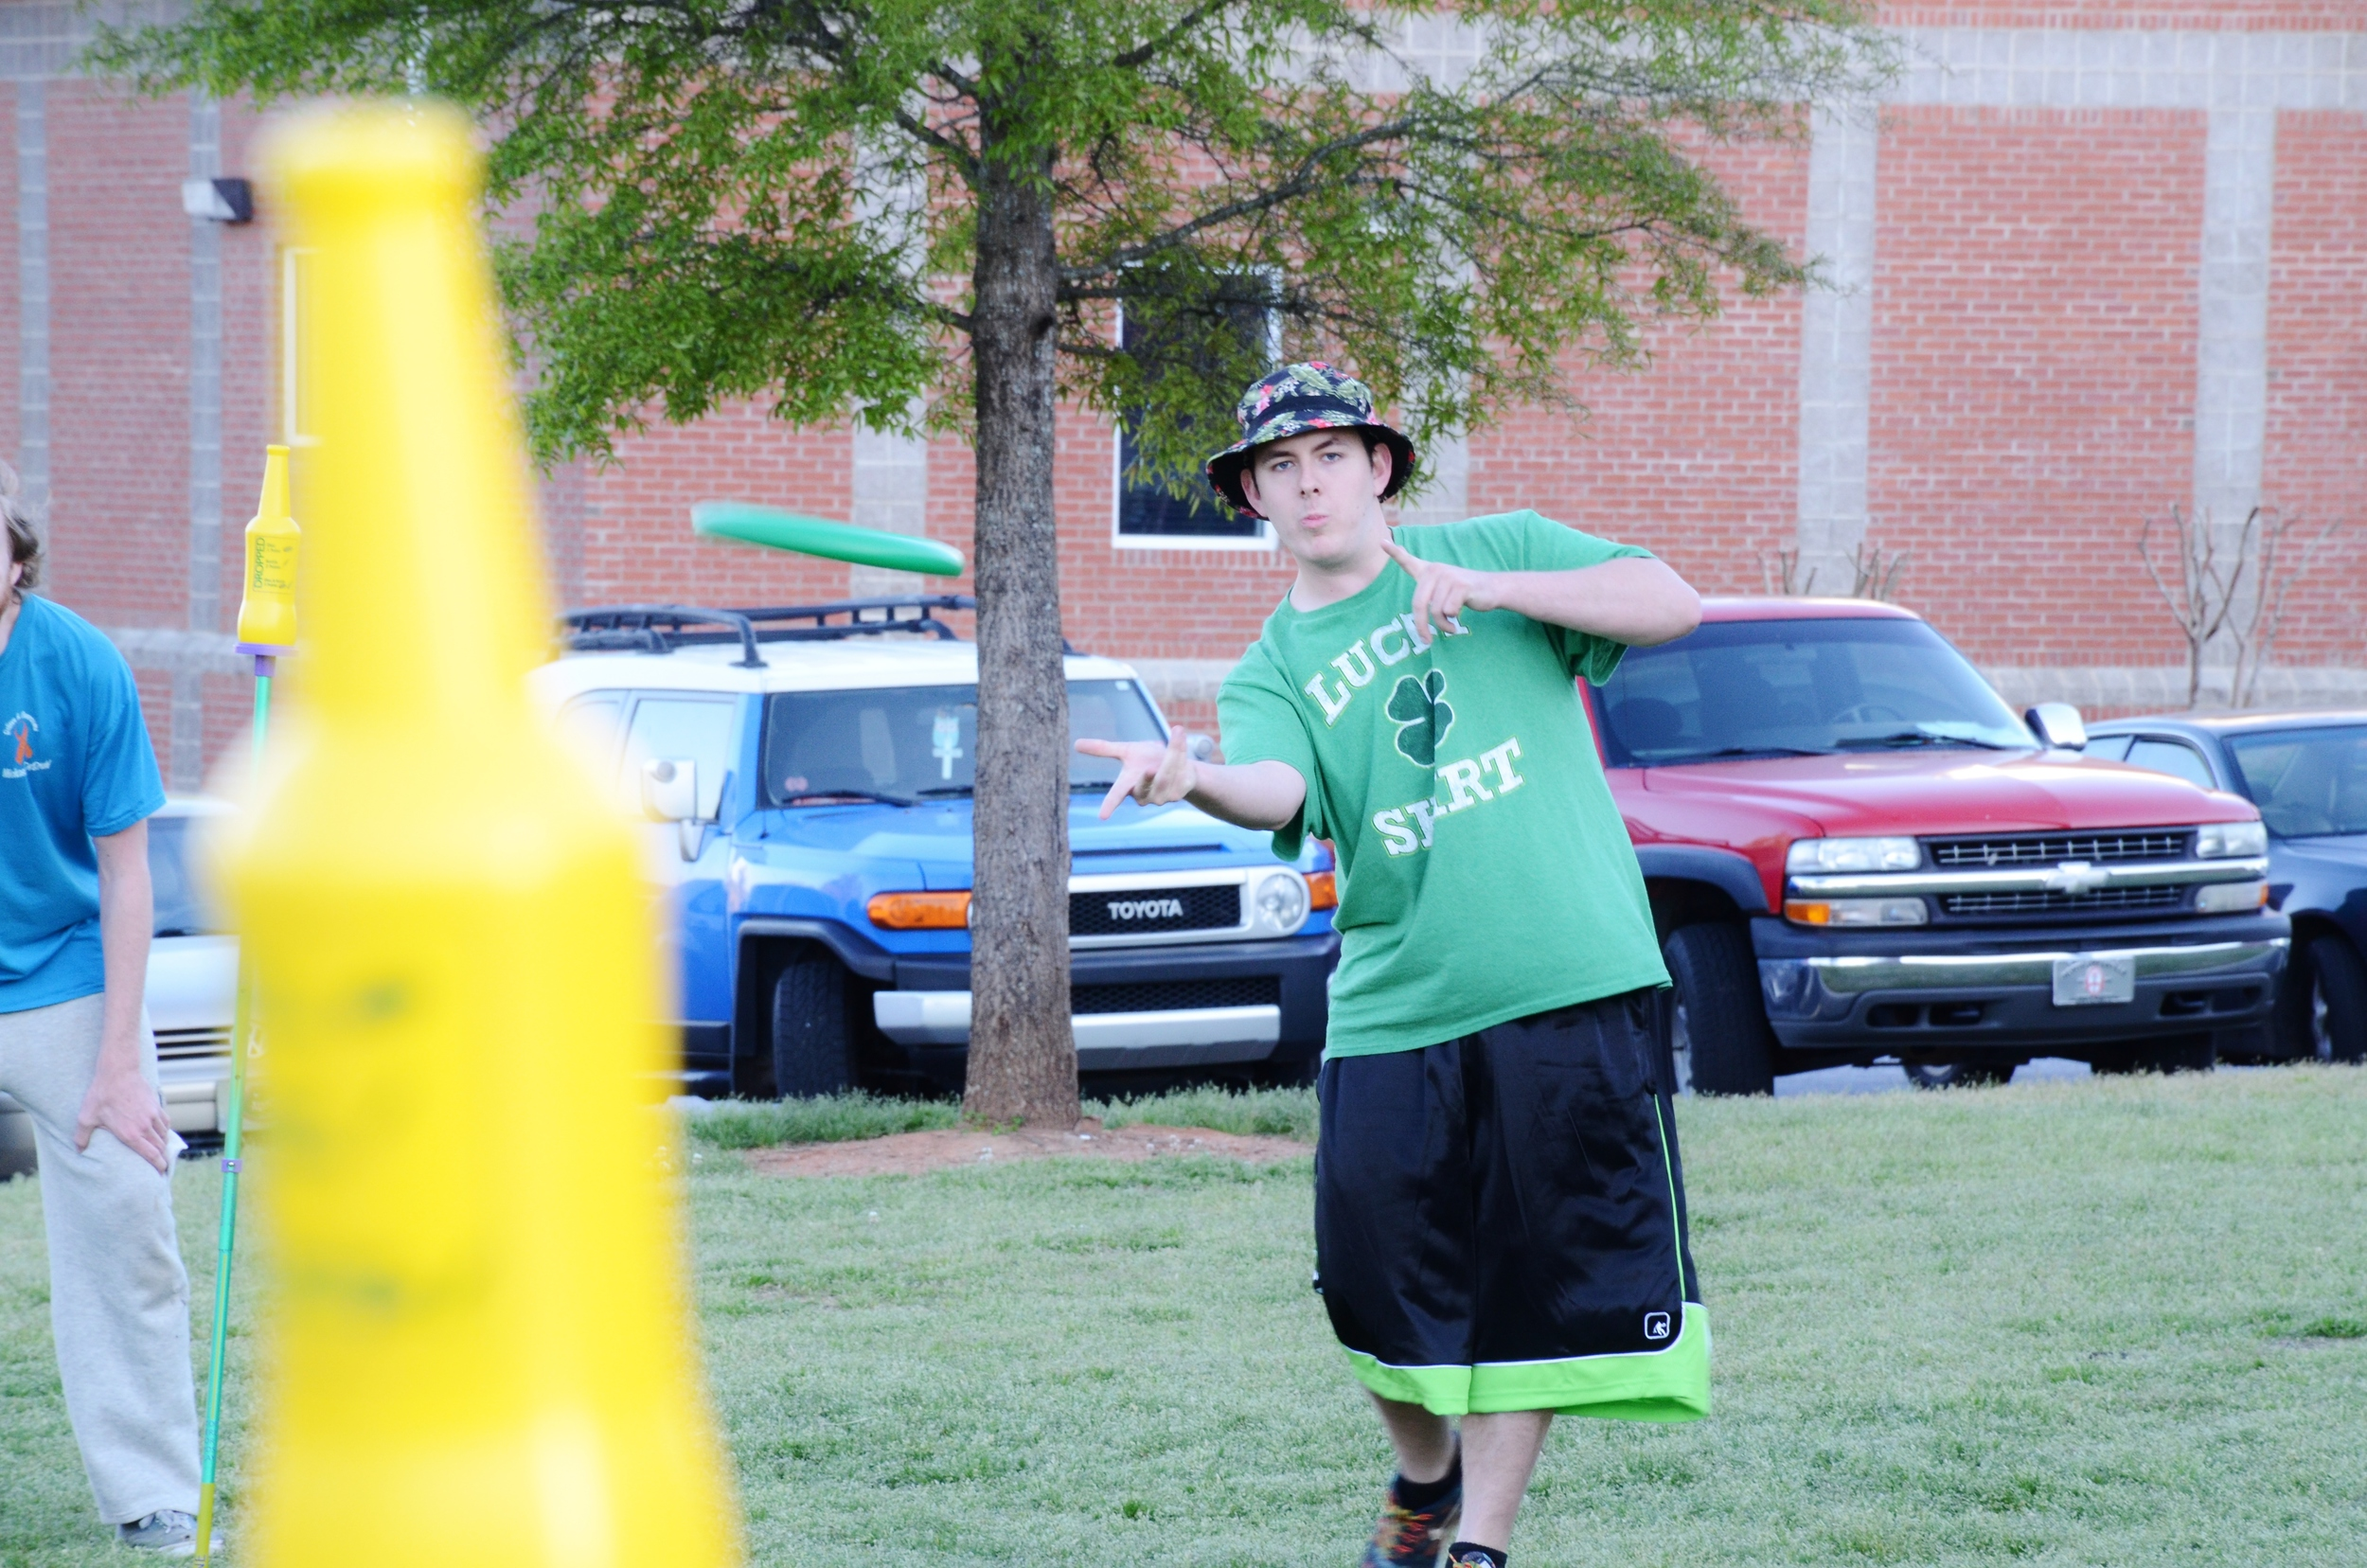 Brian Cordle shows his frisbee skills as he tries to knock down a bottle in a game of Polish.